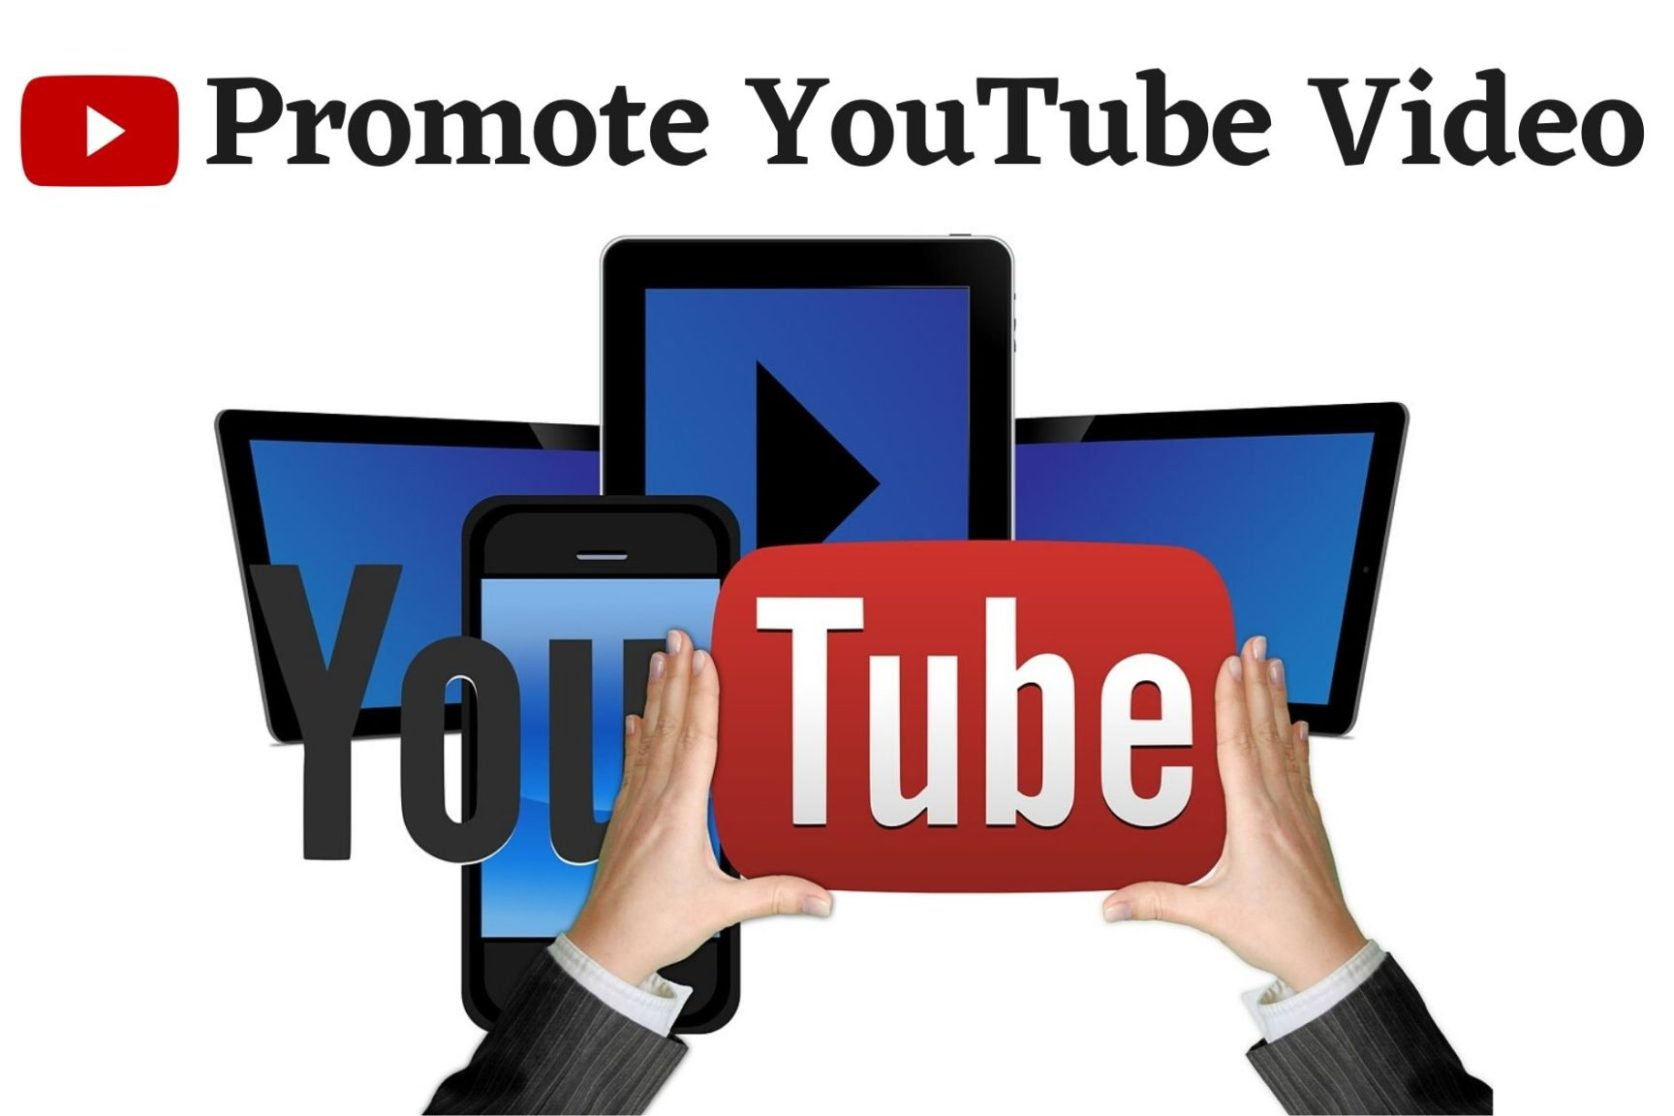 How to promote YouTube videos free